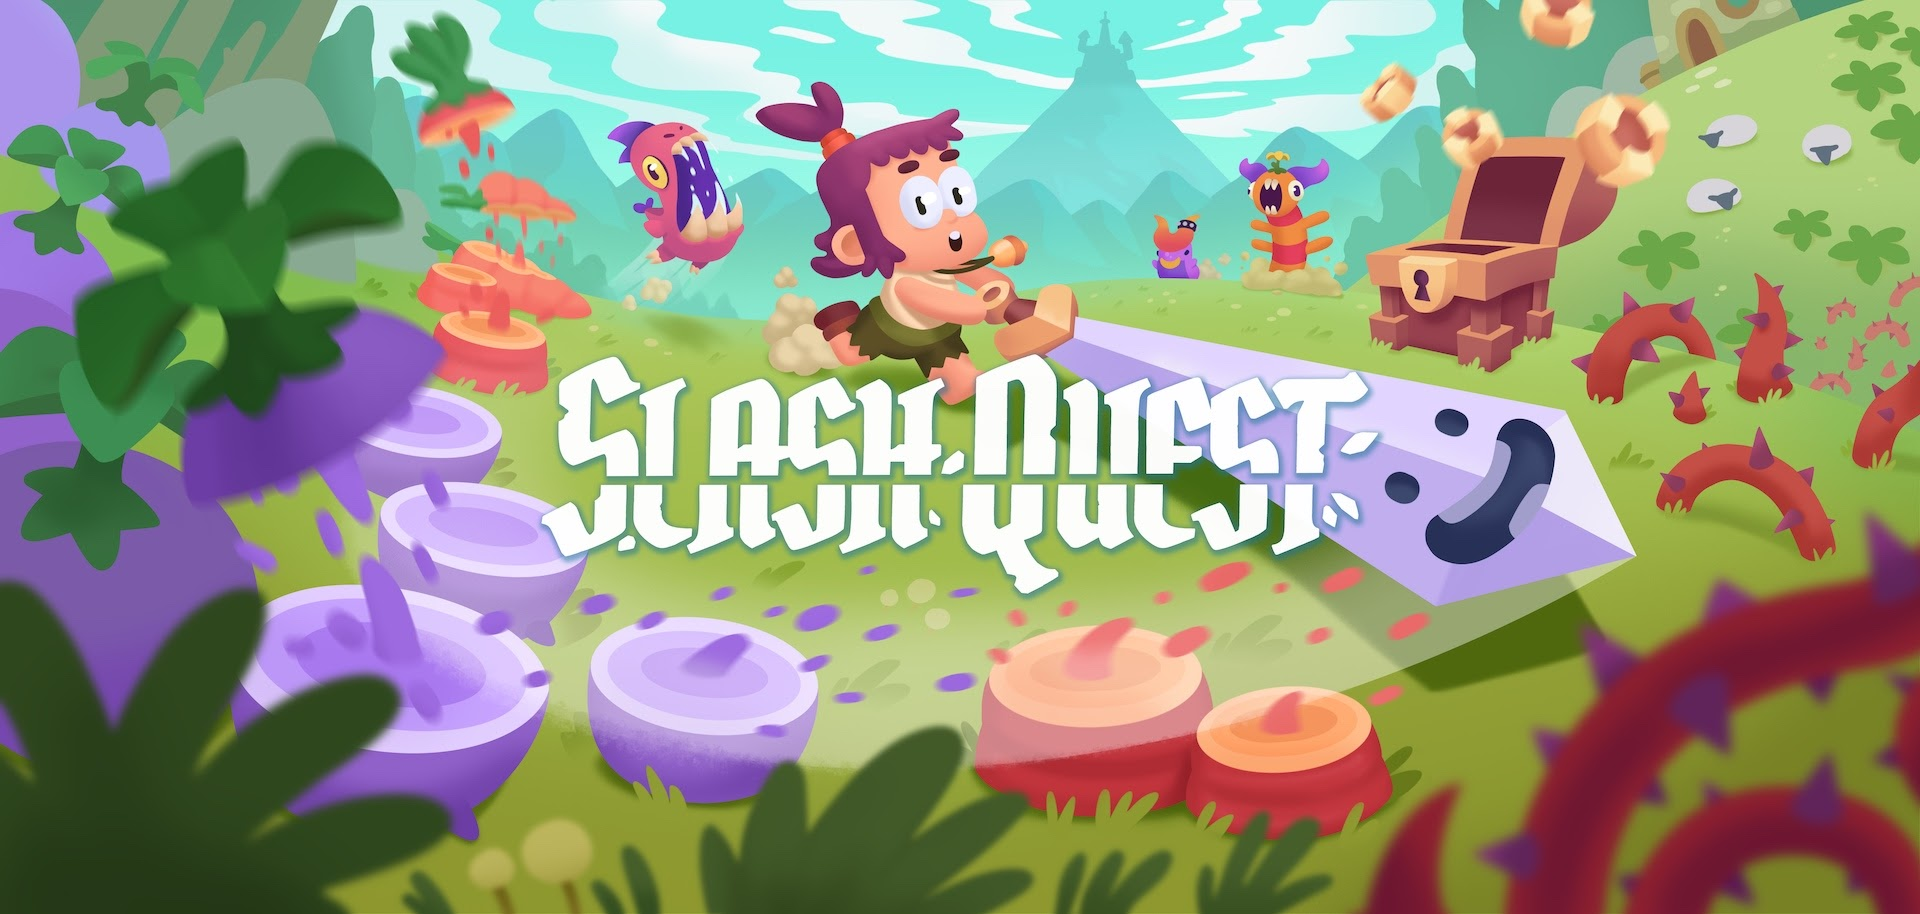 'Slash Quest!' is the New Apple Arcade Title from Noodlecake and it's Launching October 2nd